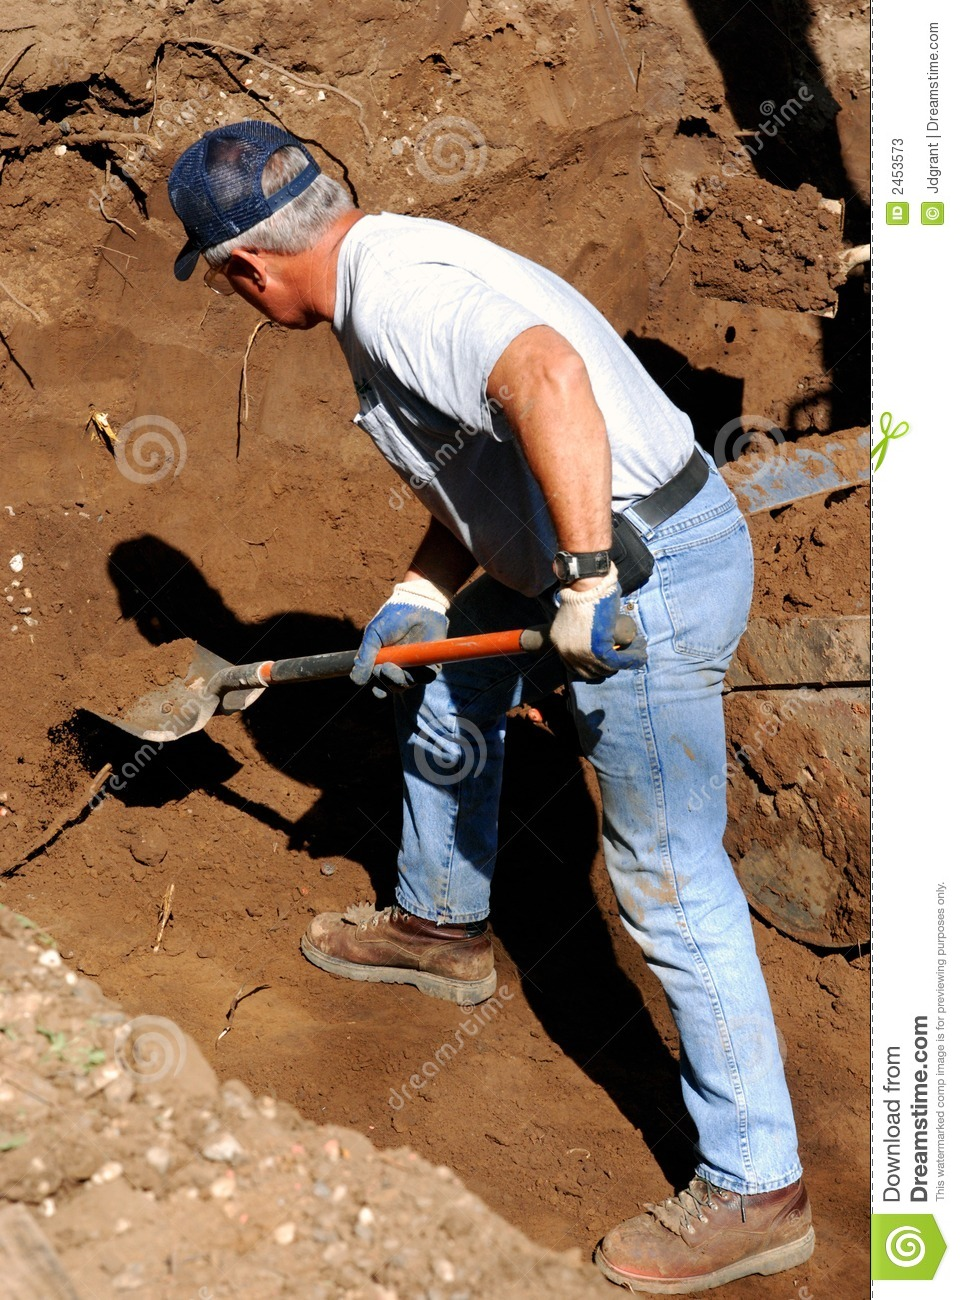 In the middle of somewhere: Digging the hole